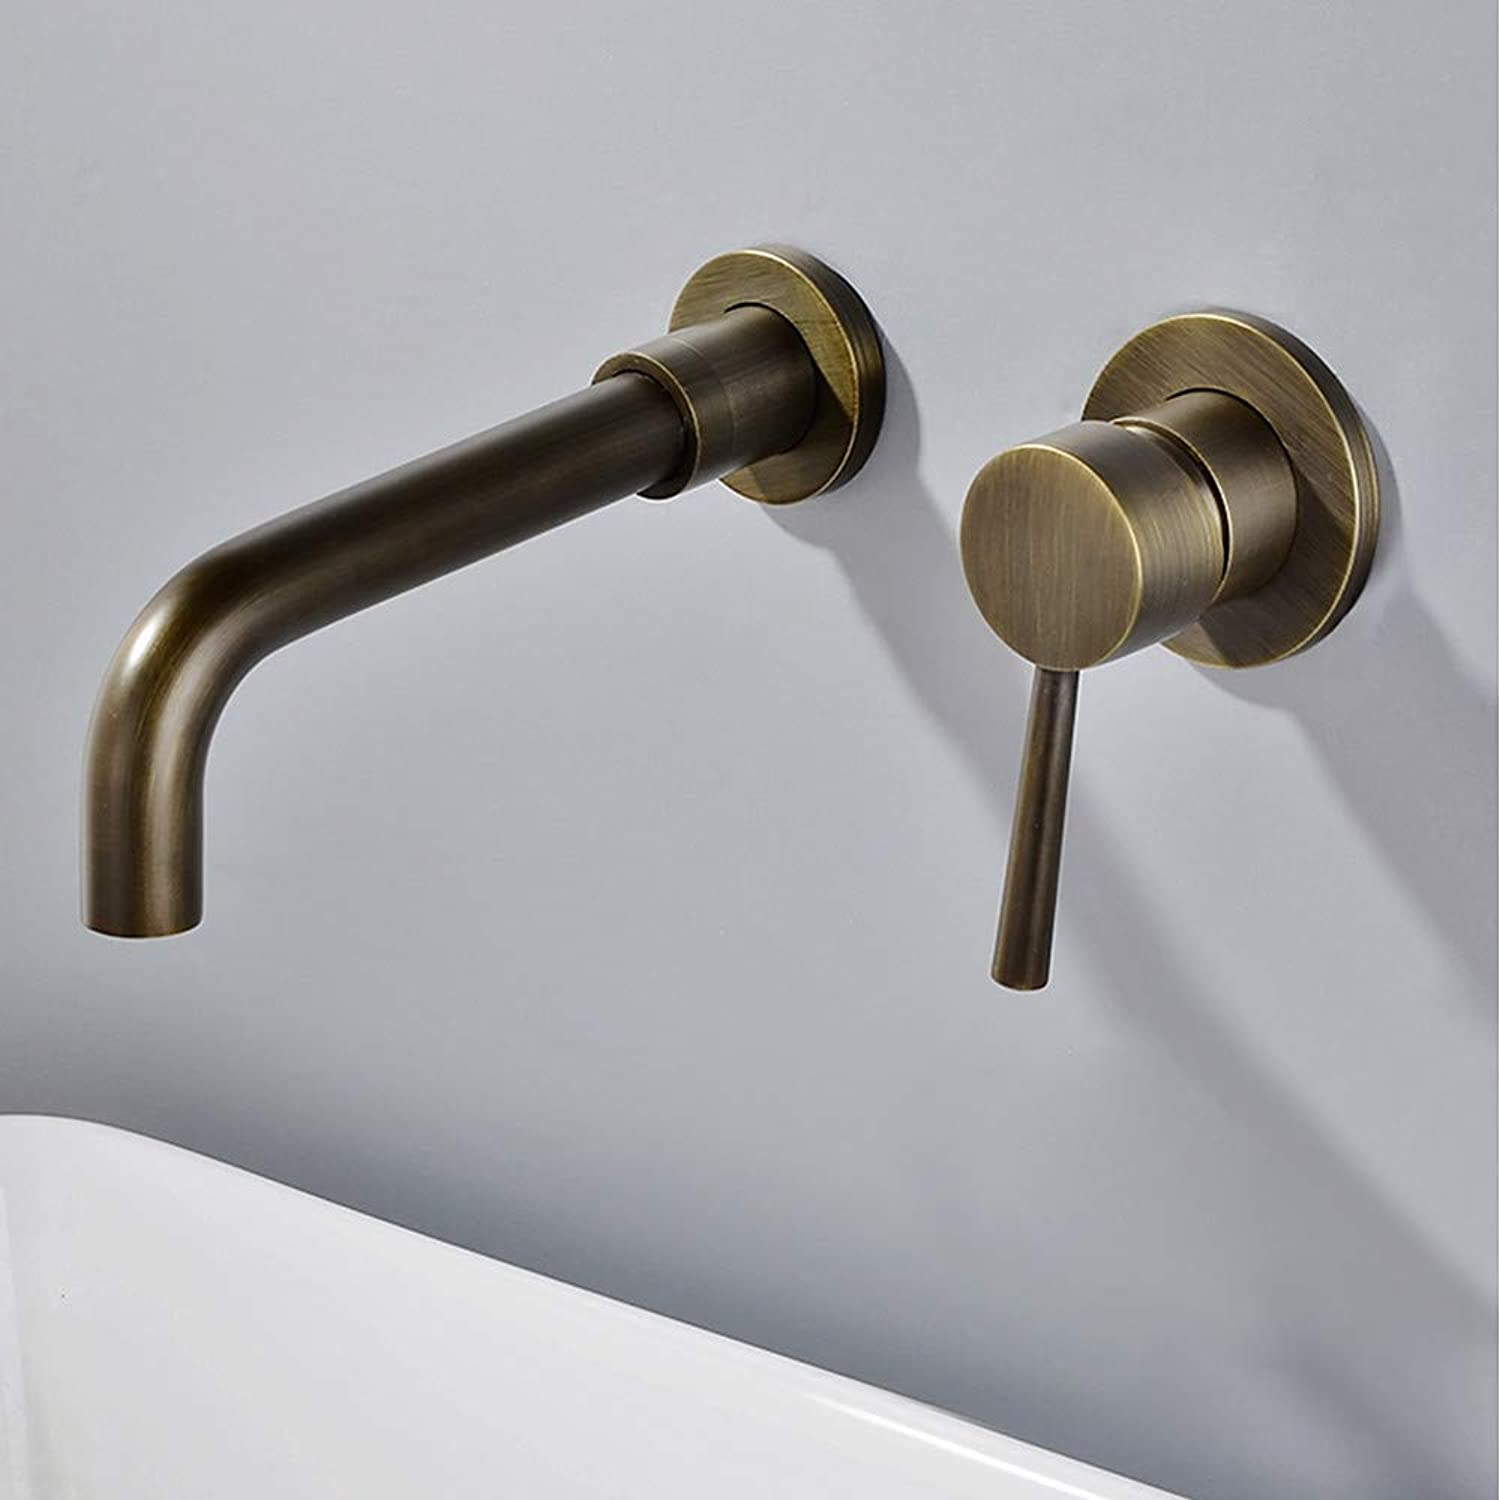 Tintin Bathroom Sink Faucet - Widespread Antique Wall Mounted Single Handle Two Holes,1